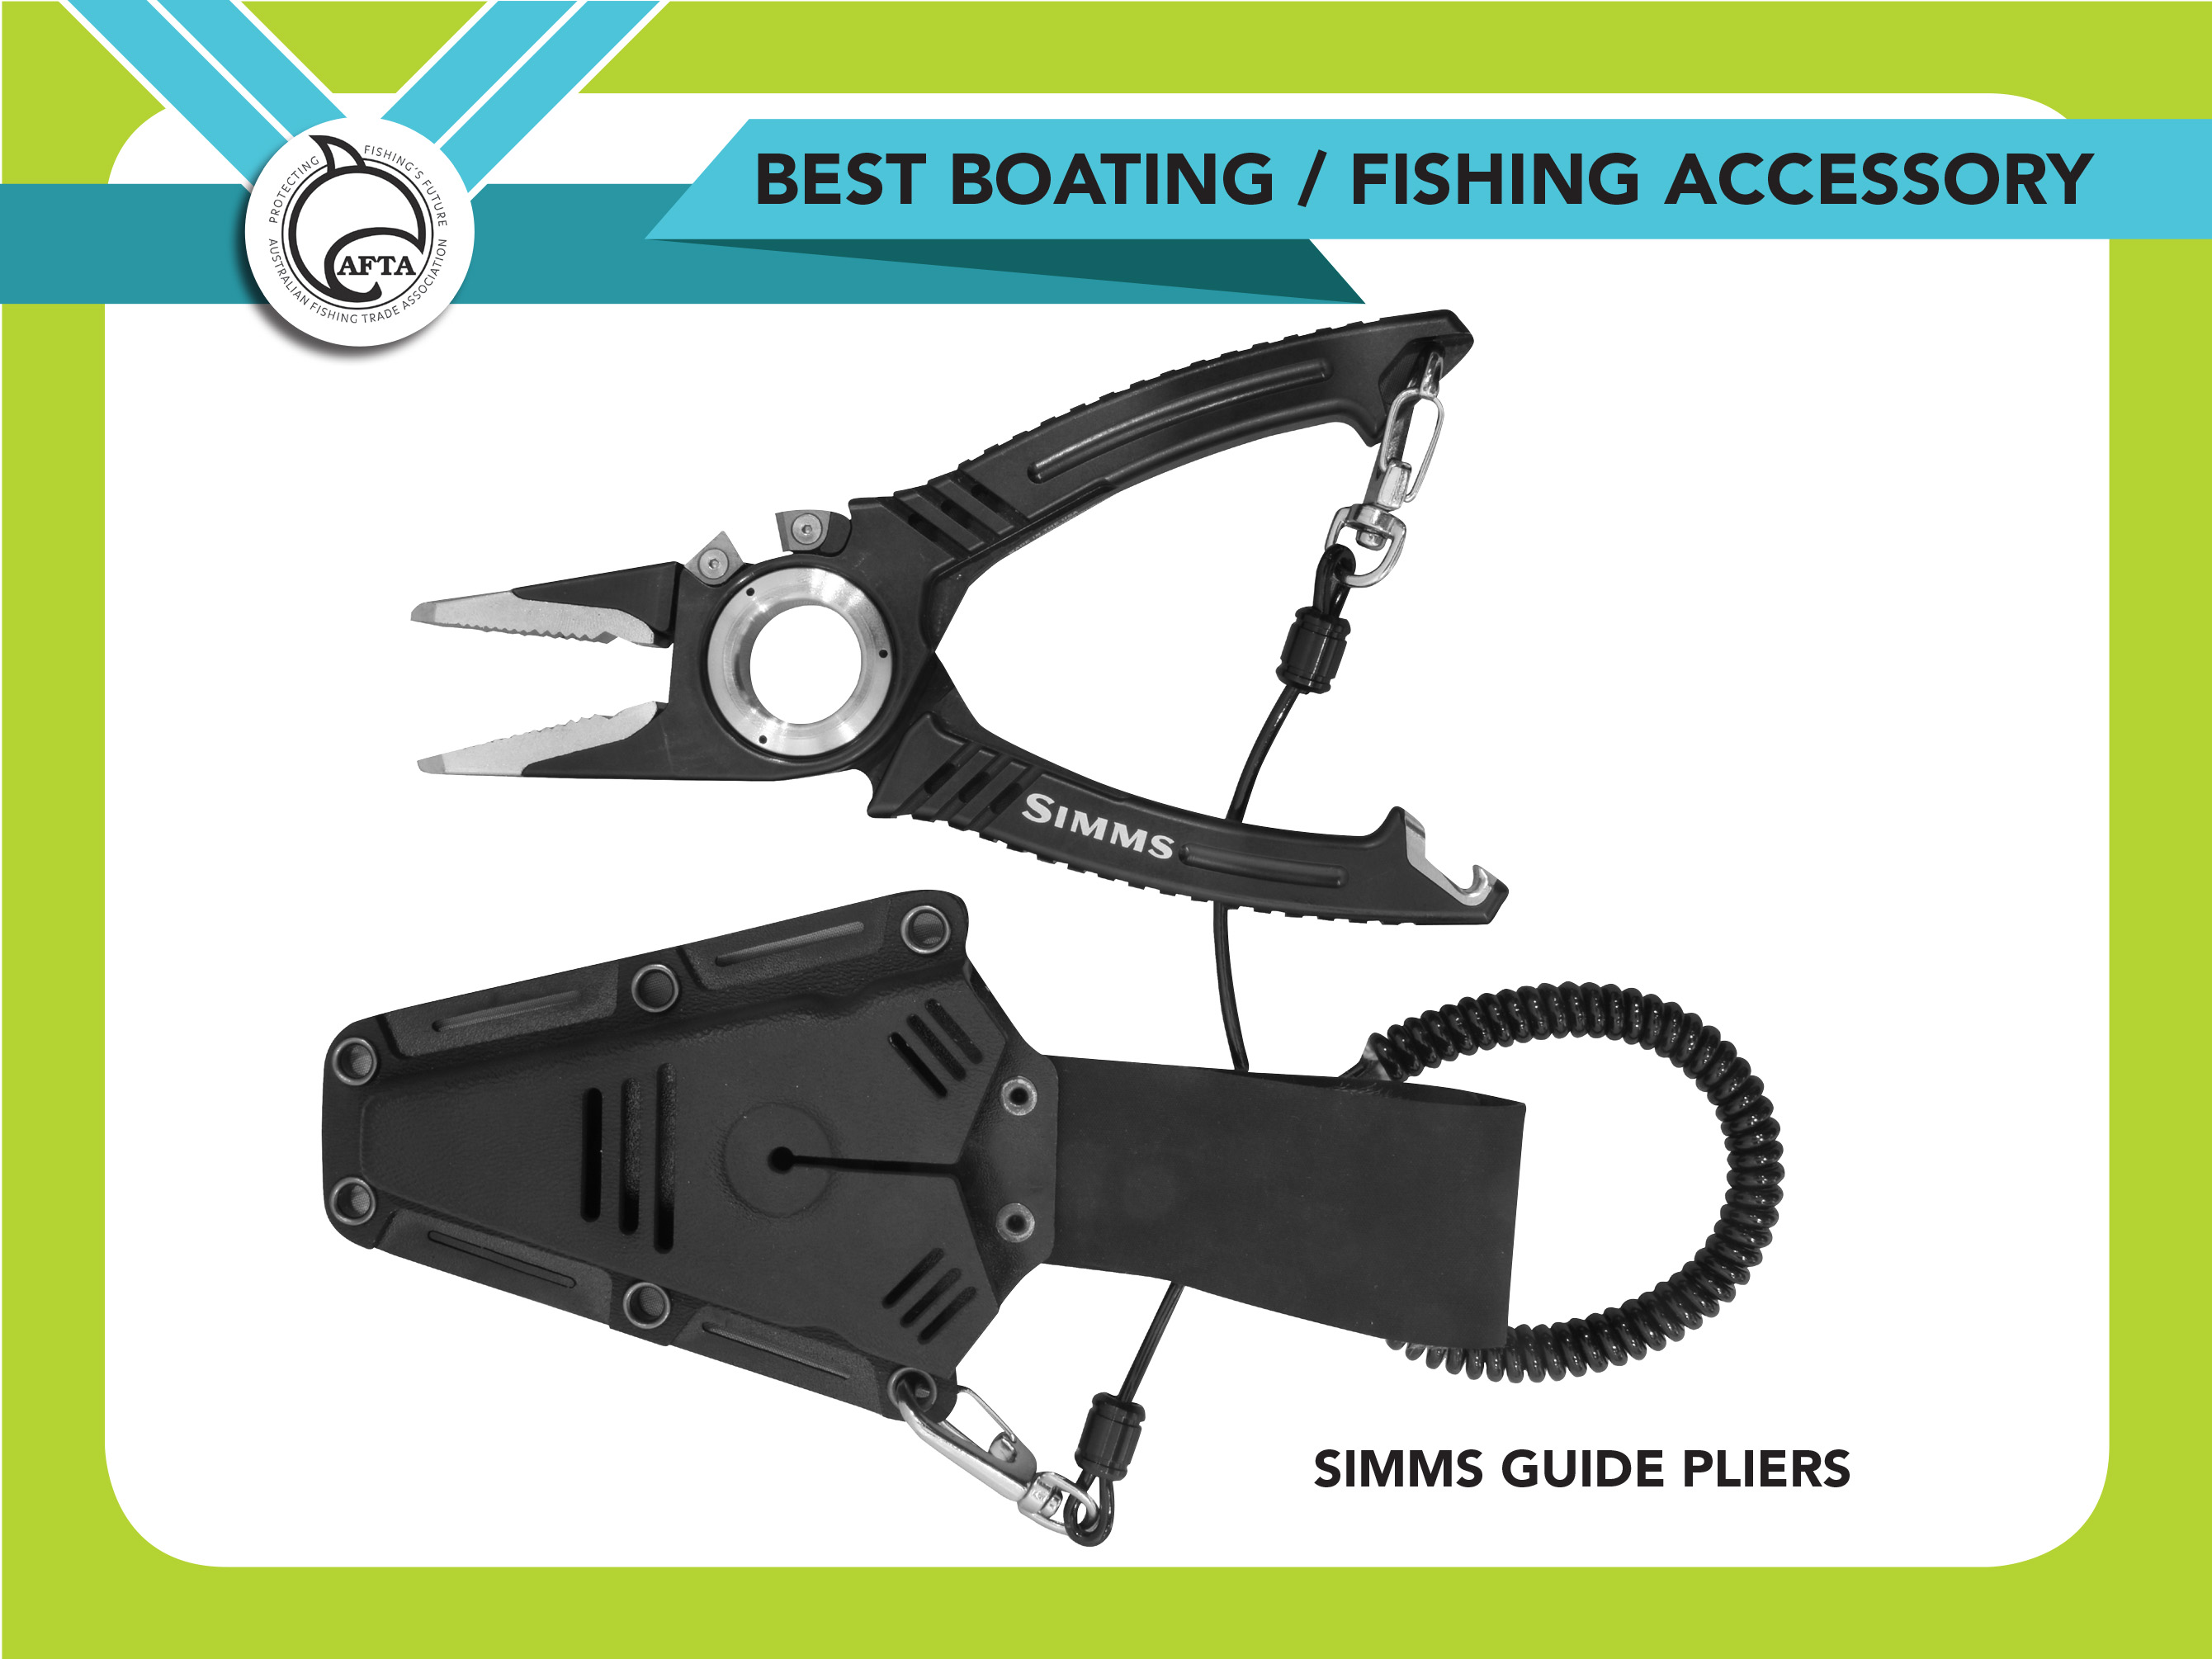 BestBoatingFishingAccessory